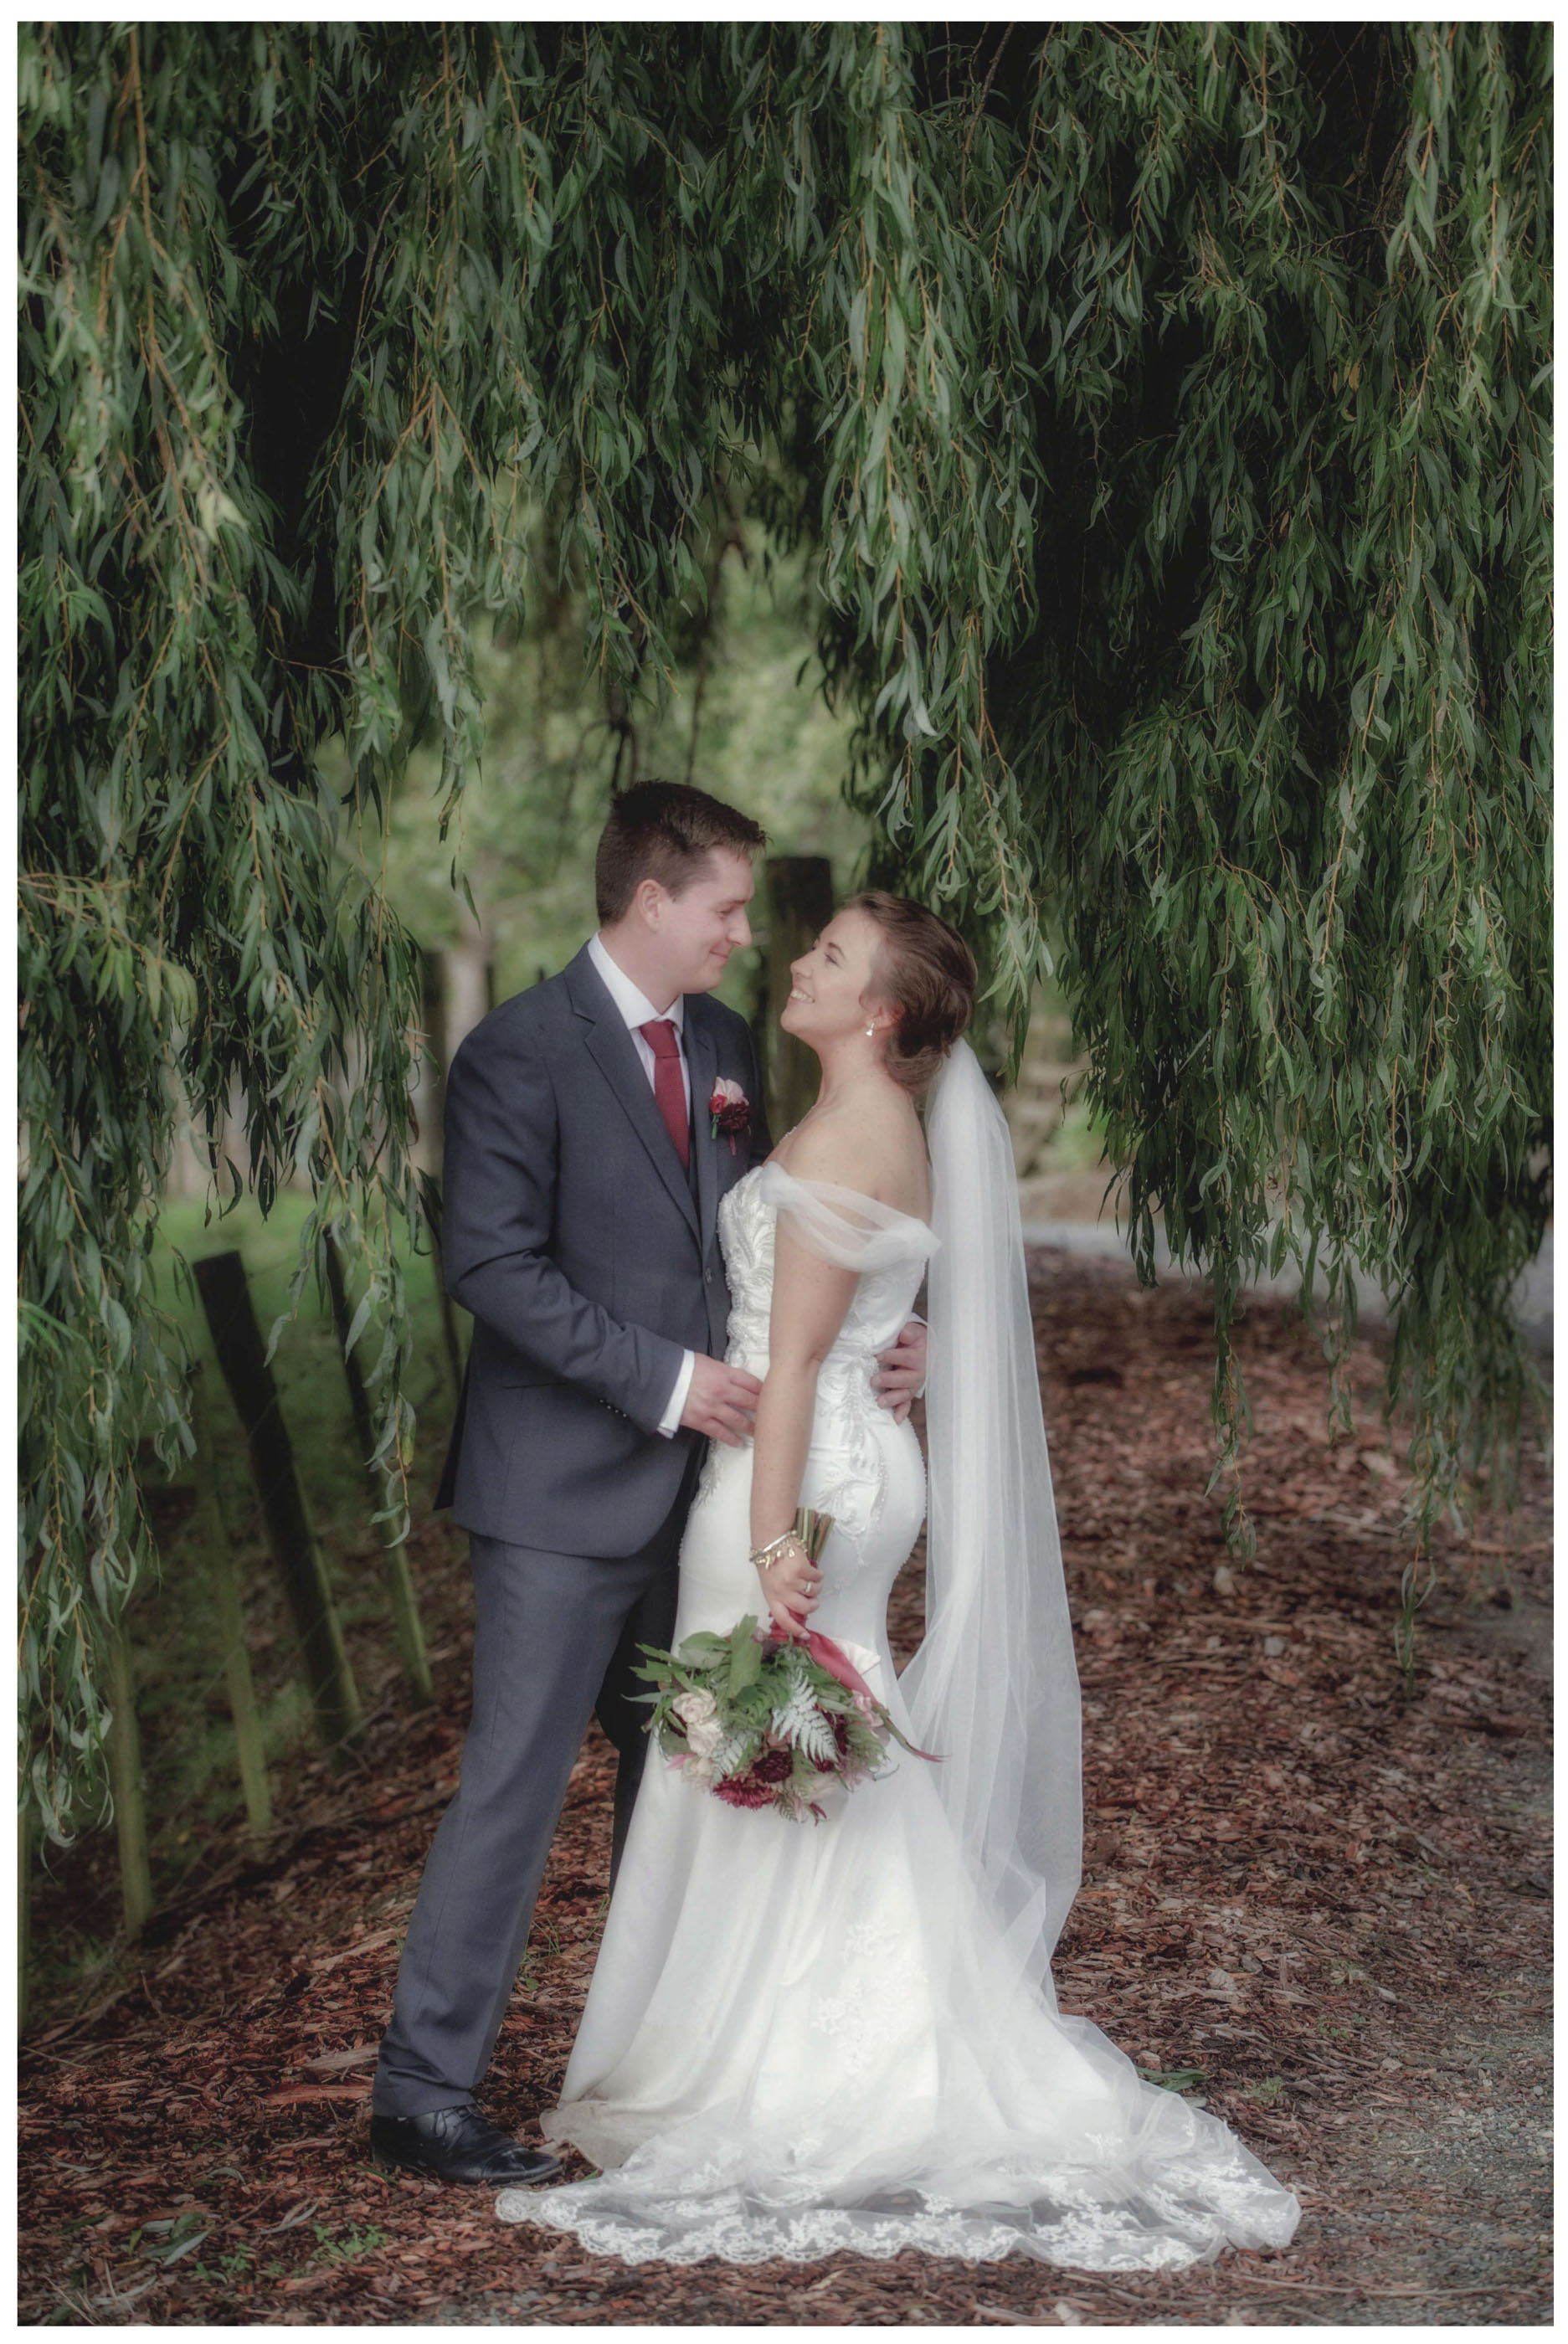 Bride in white wedding dress with flowers kisses groom under willow tree in Kumeu